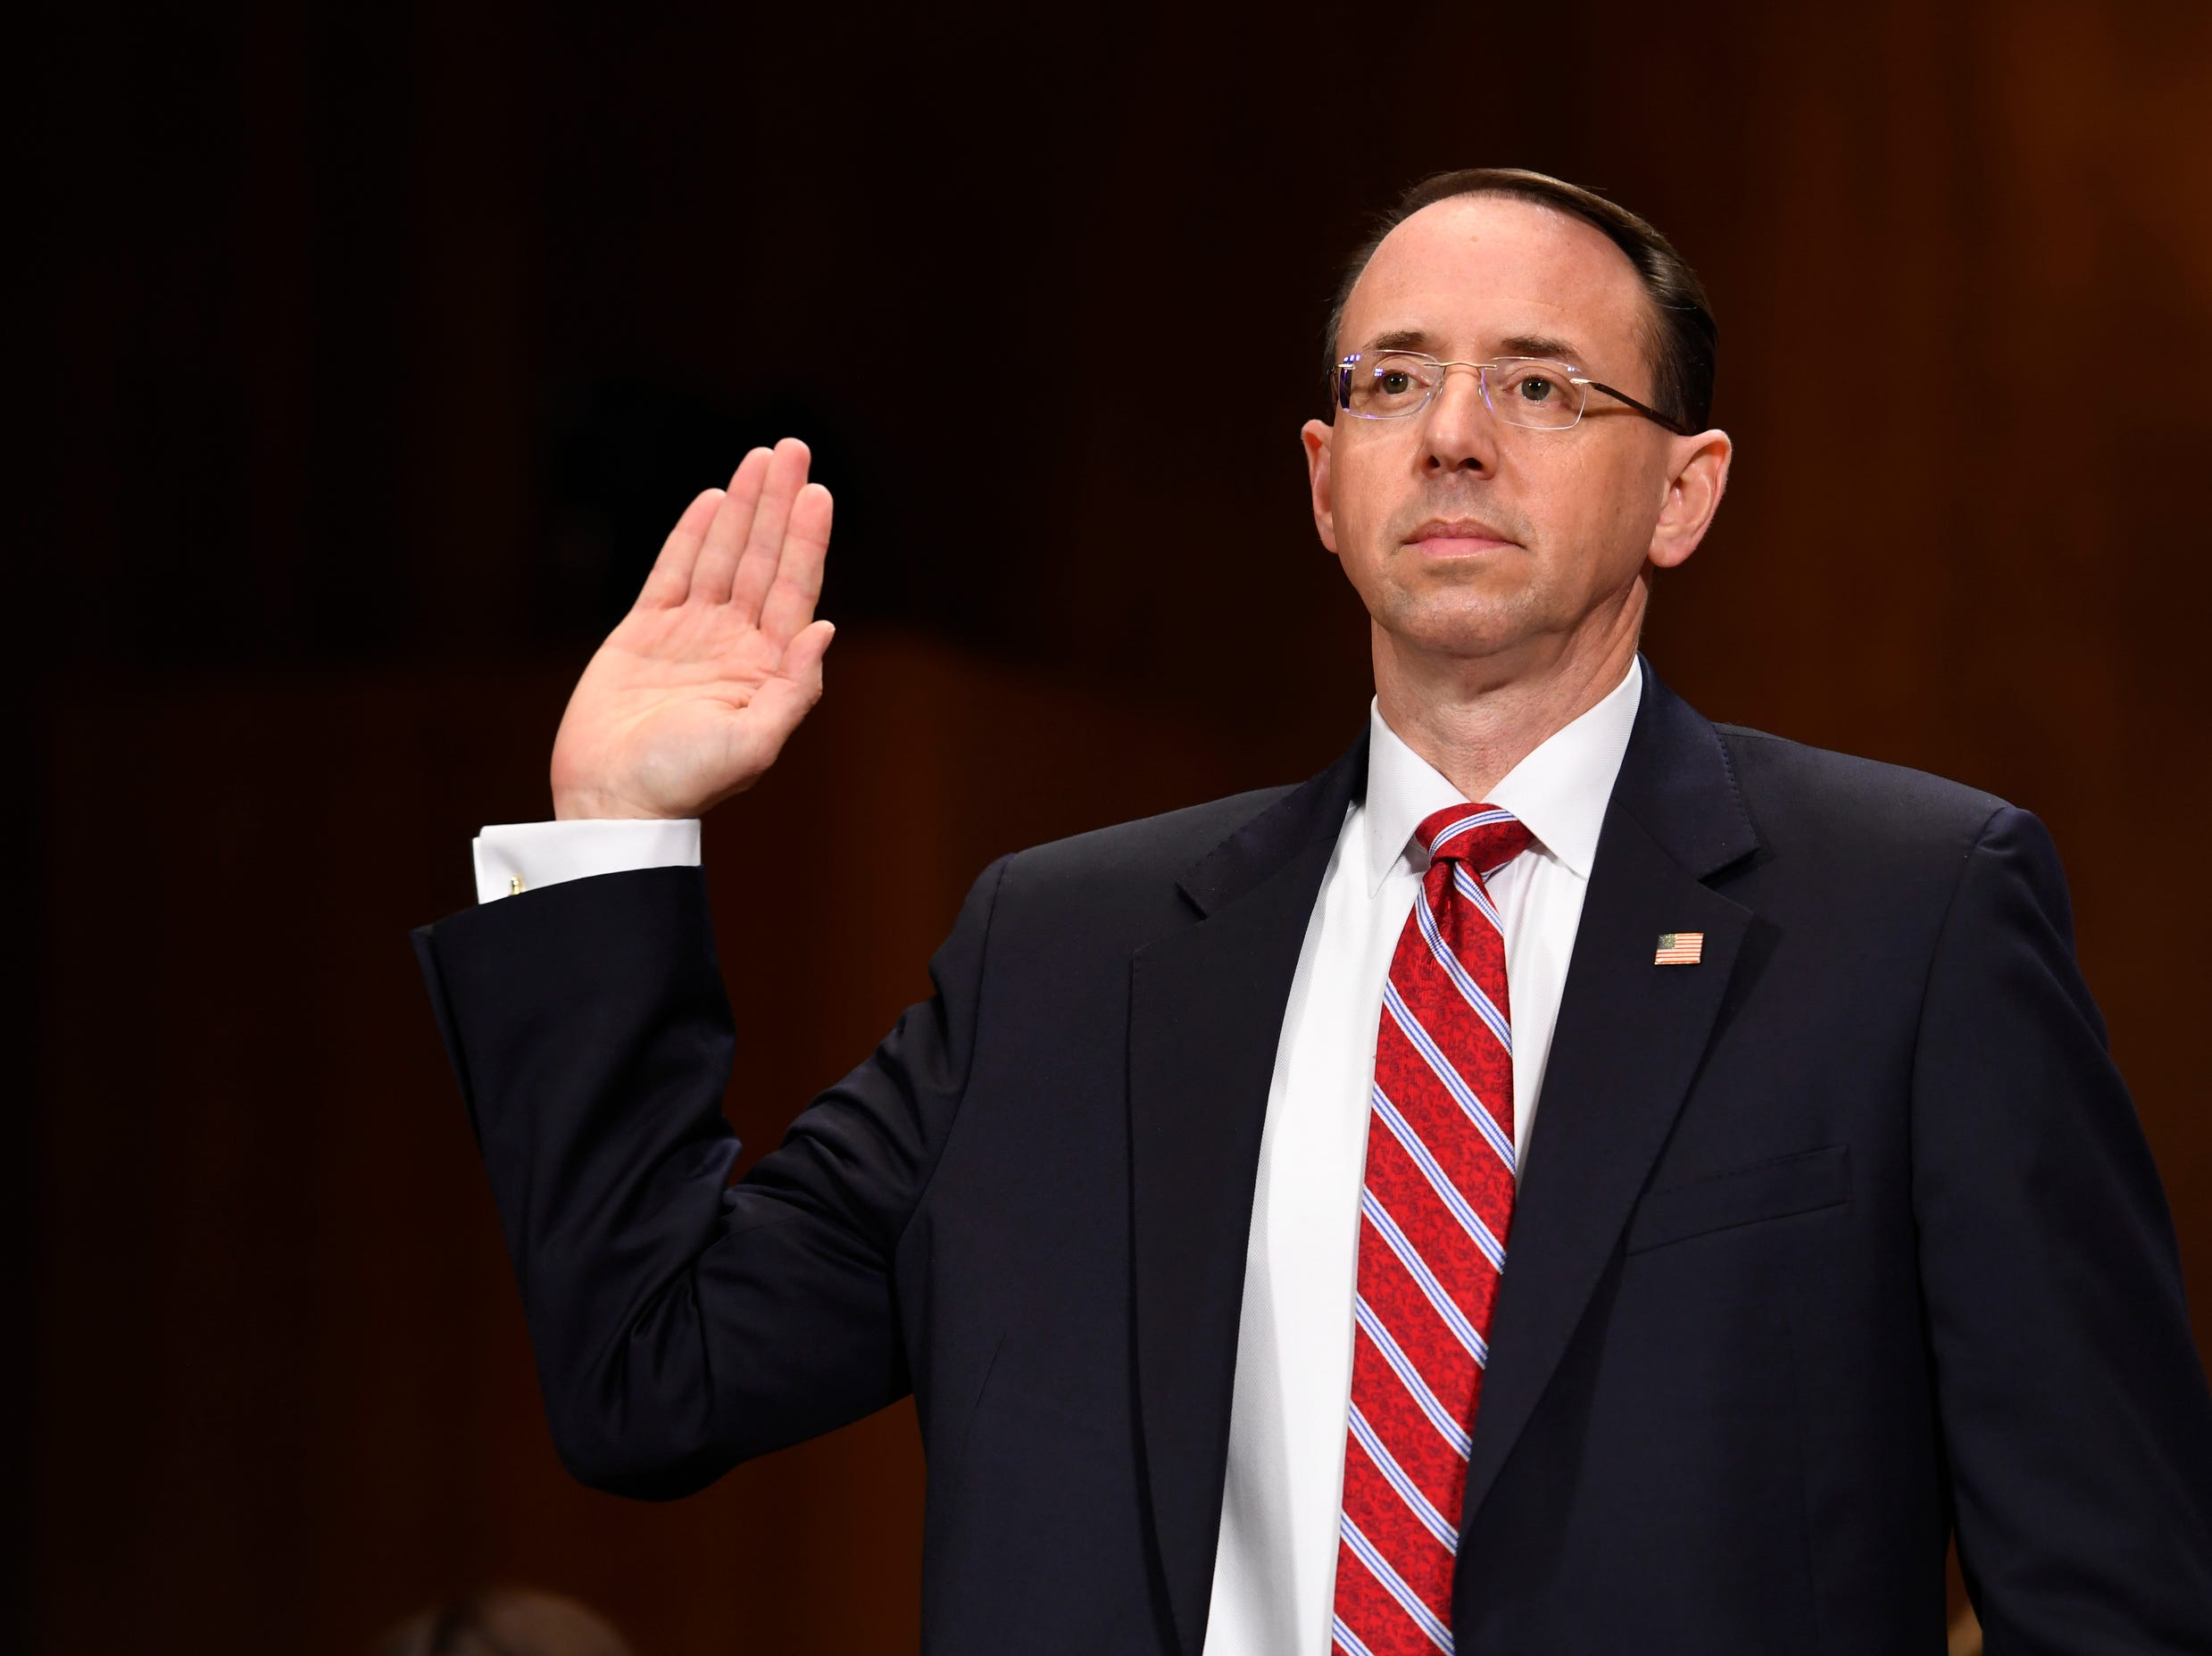 Rosenstein is sworn in at the start of the Senate Judiciary Committee confirmation hearing of Rod Rosenstein for Deputy Attorney General and Rachel L. Brand for Associate Attorney General.